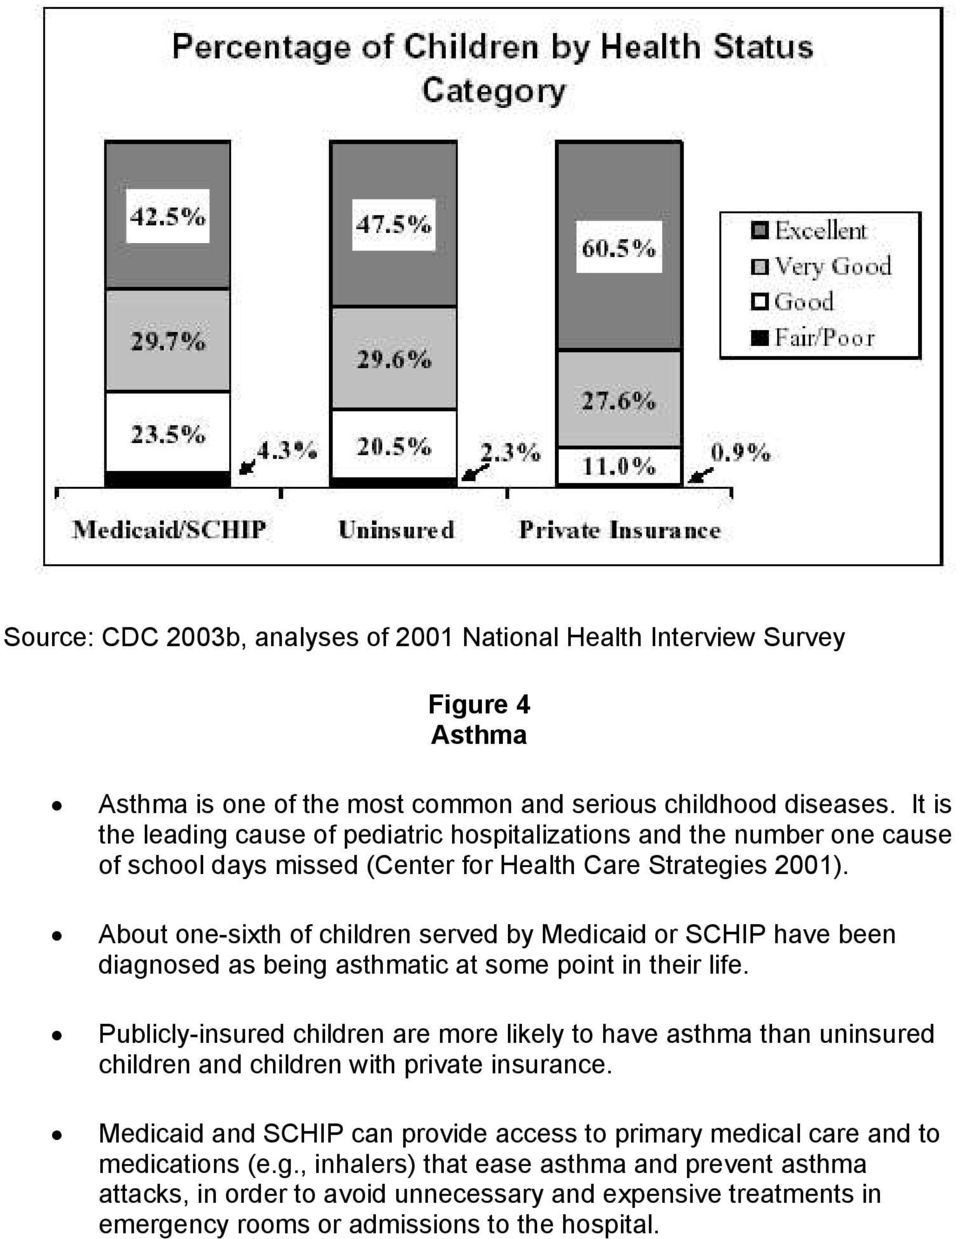 About one-sixth of children served by Medicaid or SCHIP have been diagnosed as being asthmatic at some point in their life.